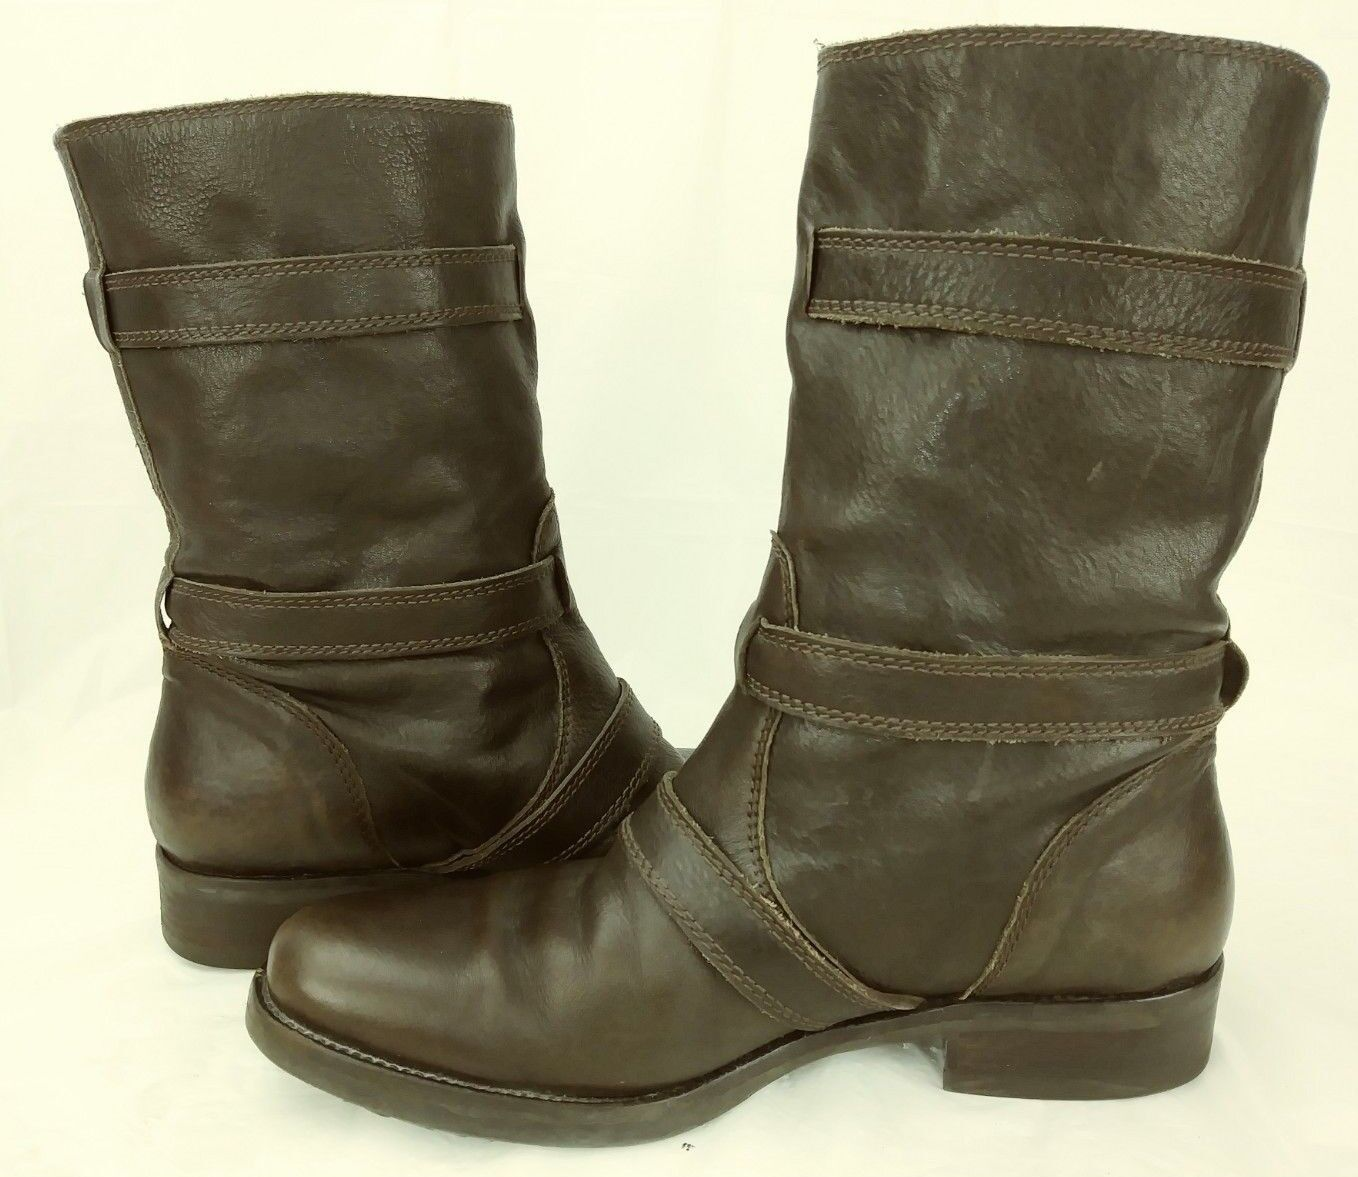 J. Crew Miller motorcycle short motorcycle Miller wos Stiefel US 8 Braun Leder Casual mid-calf 814 cfb184